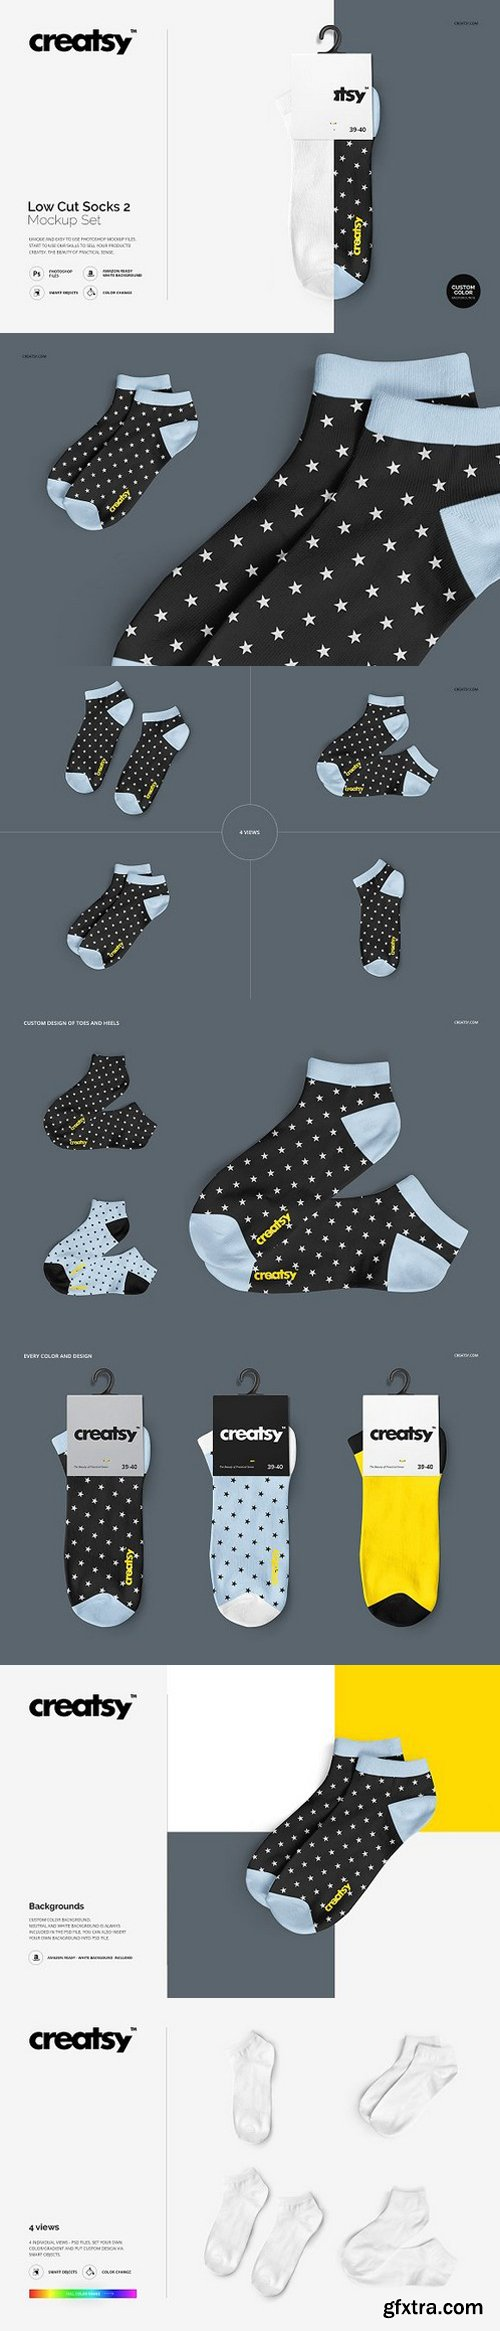 CM - Low Cut Socks 2 Mockup Set 1654200